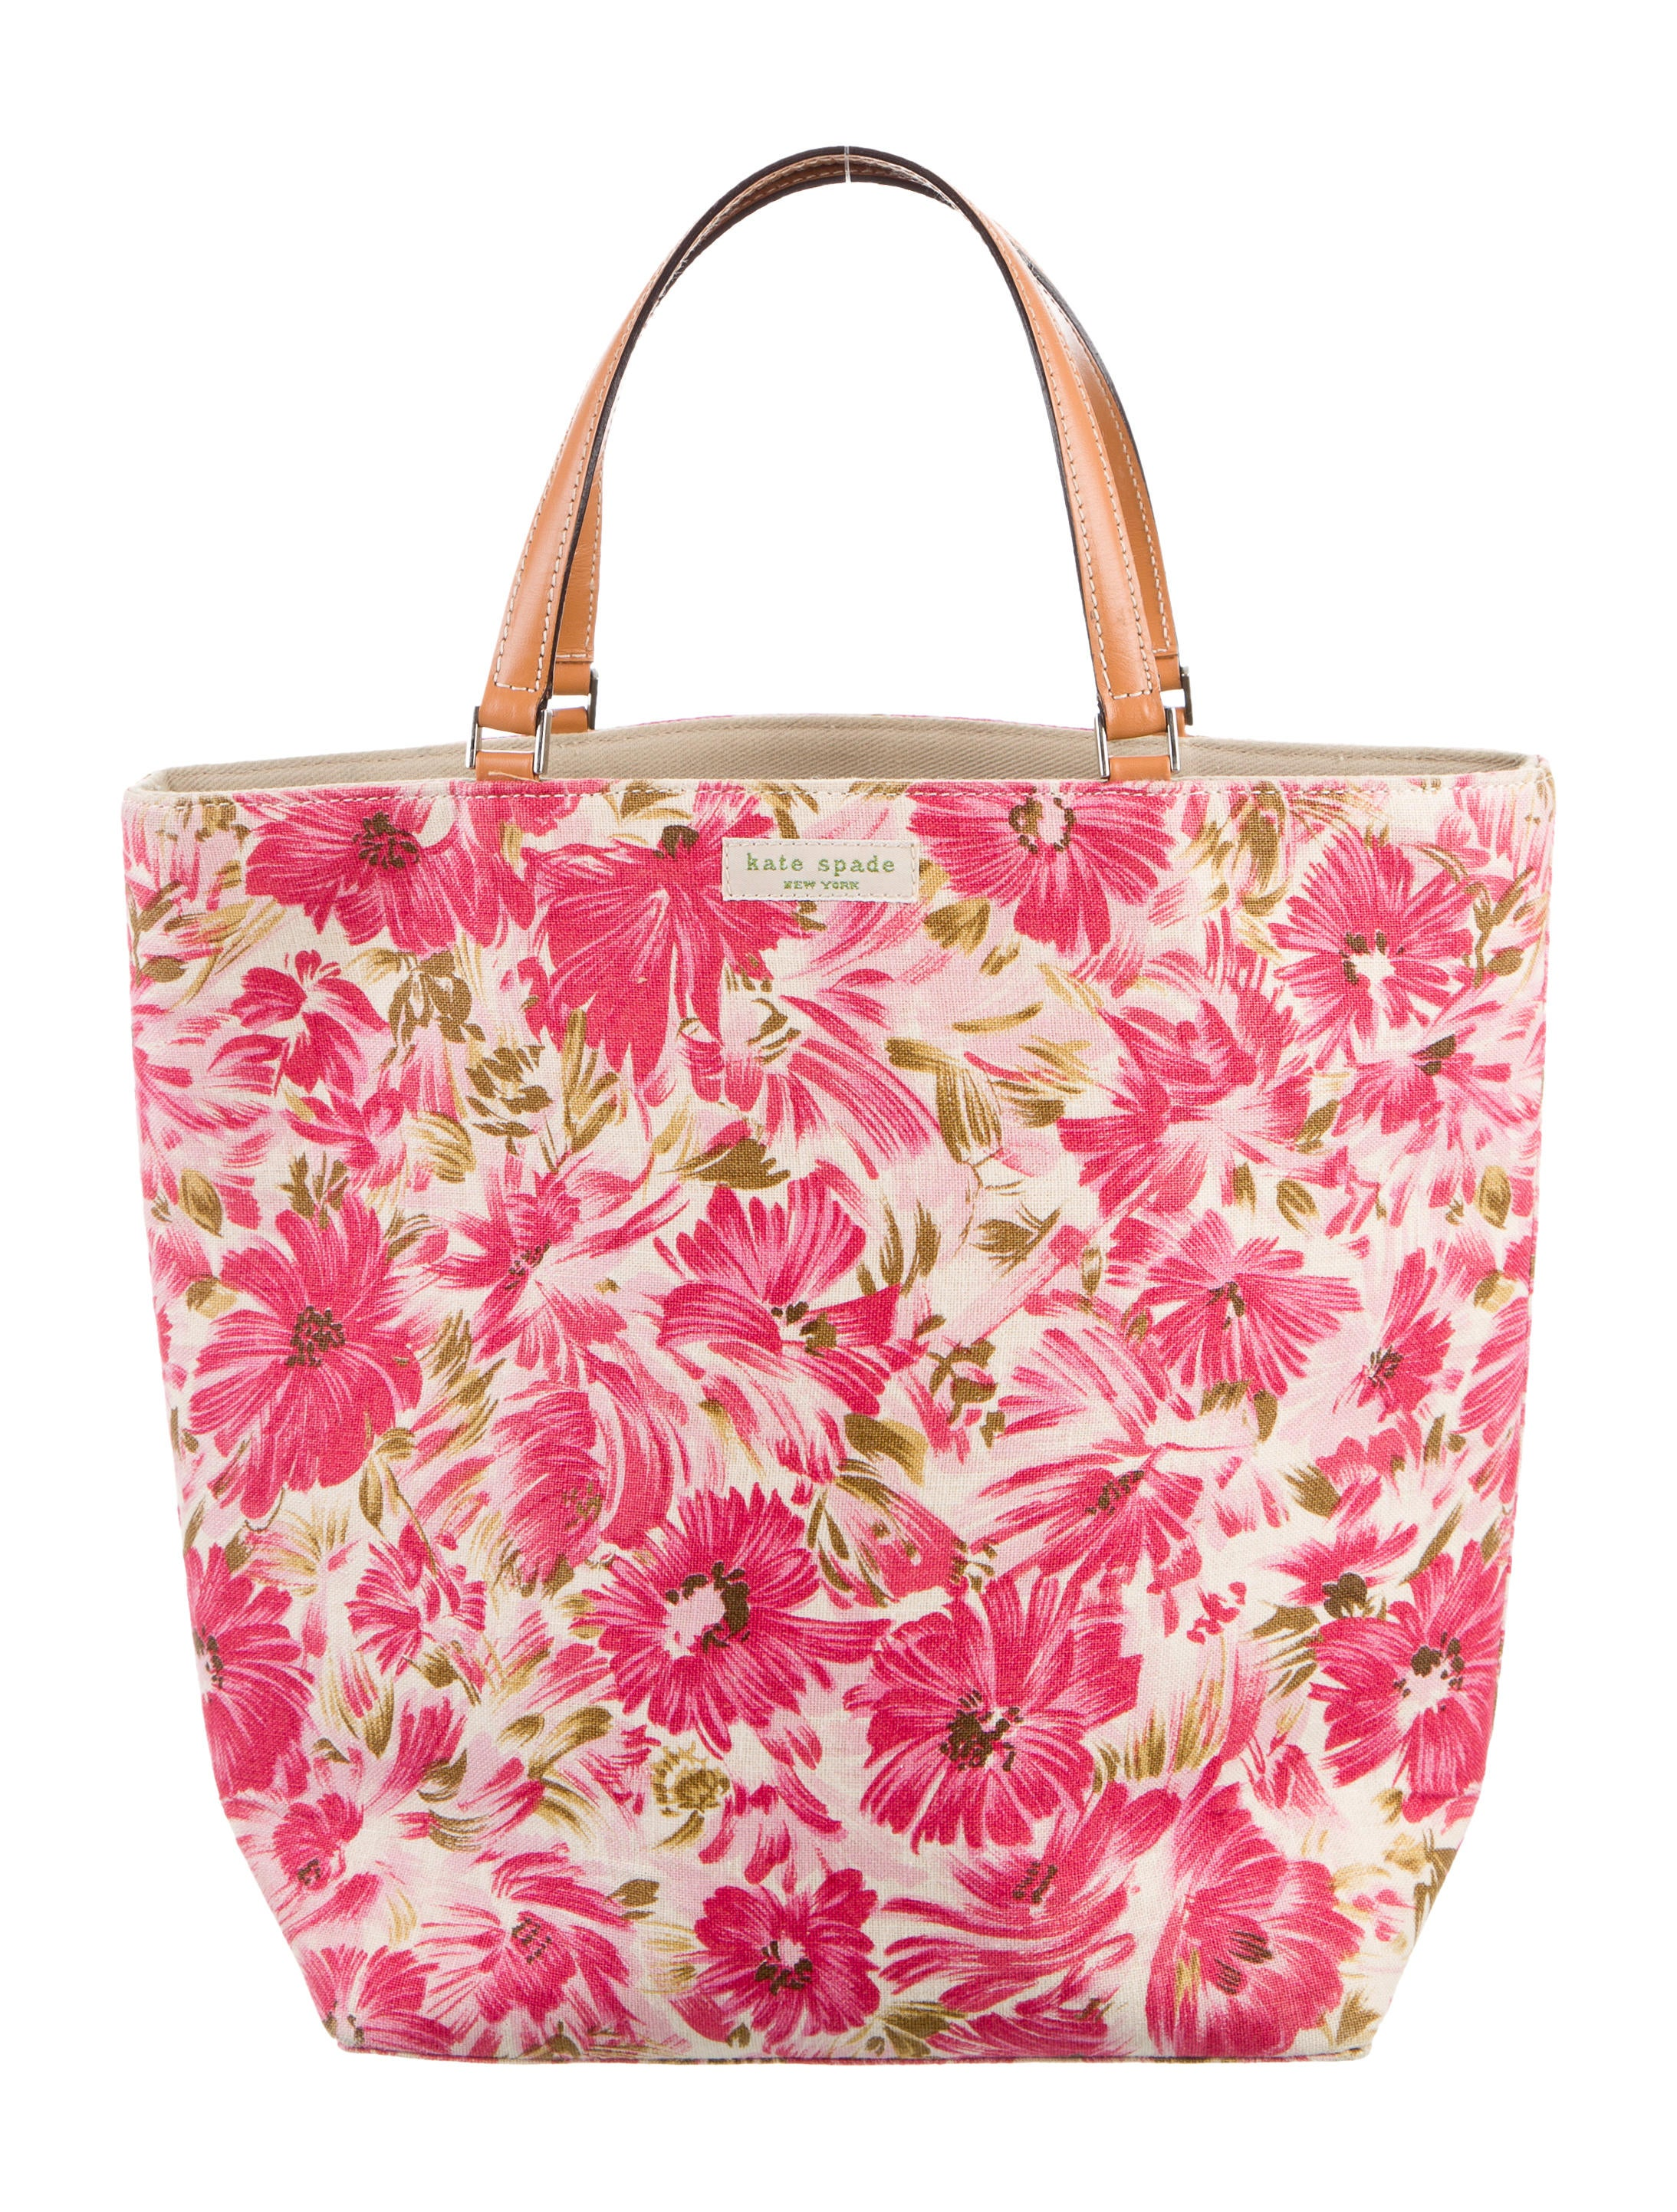 Kate Spade New York Floral Print Handle Bag - Handbags - WKA57248 | The RealReal